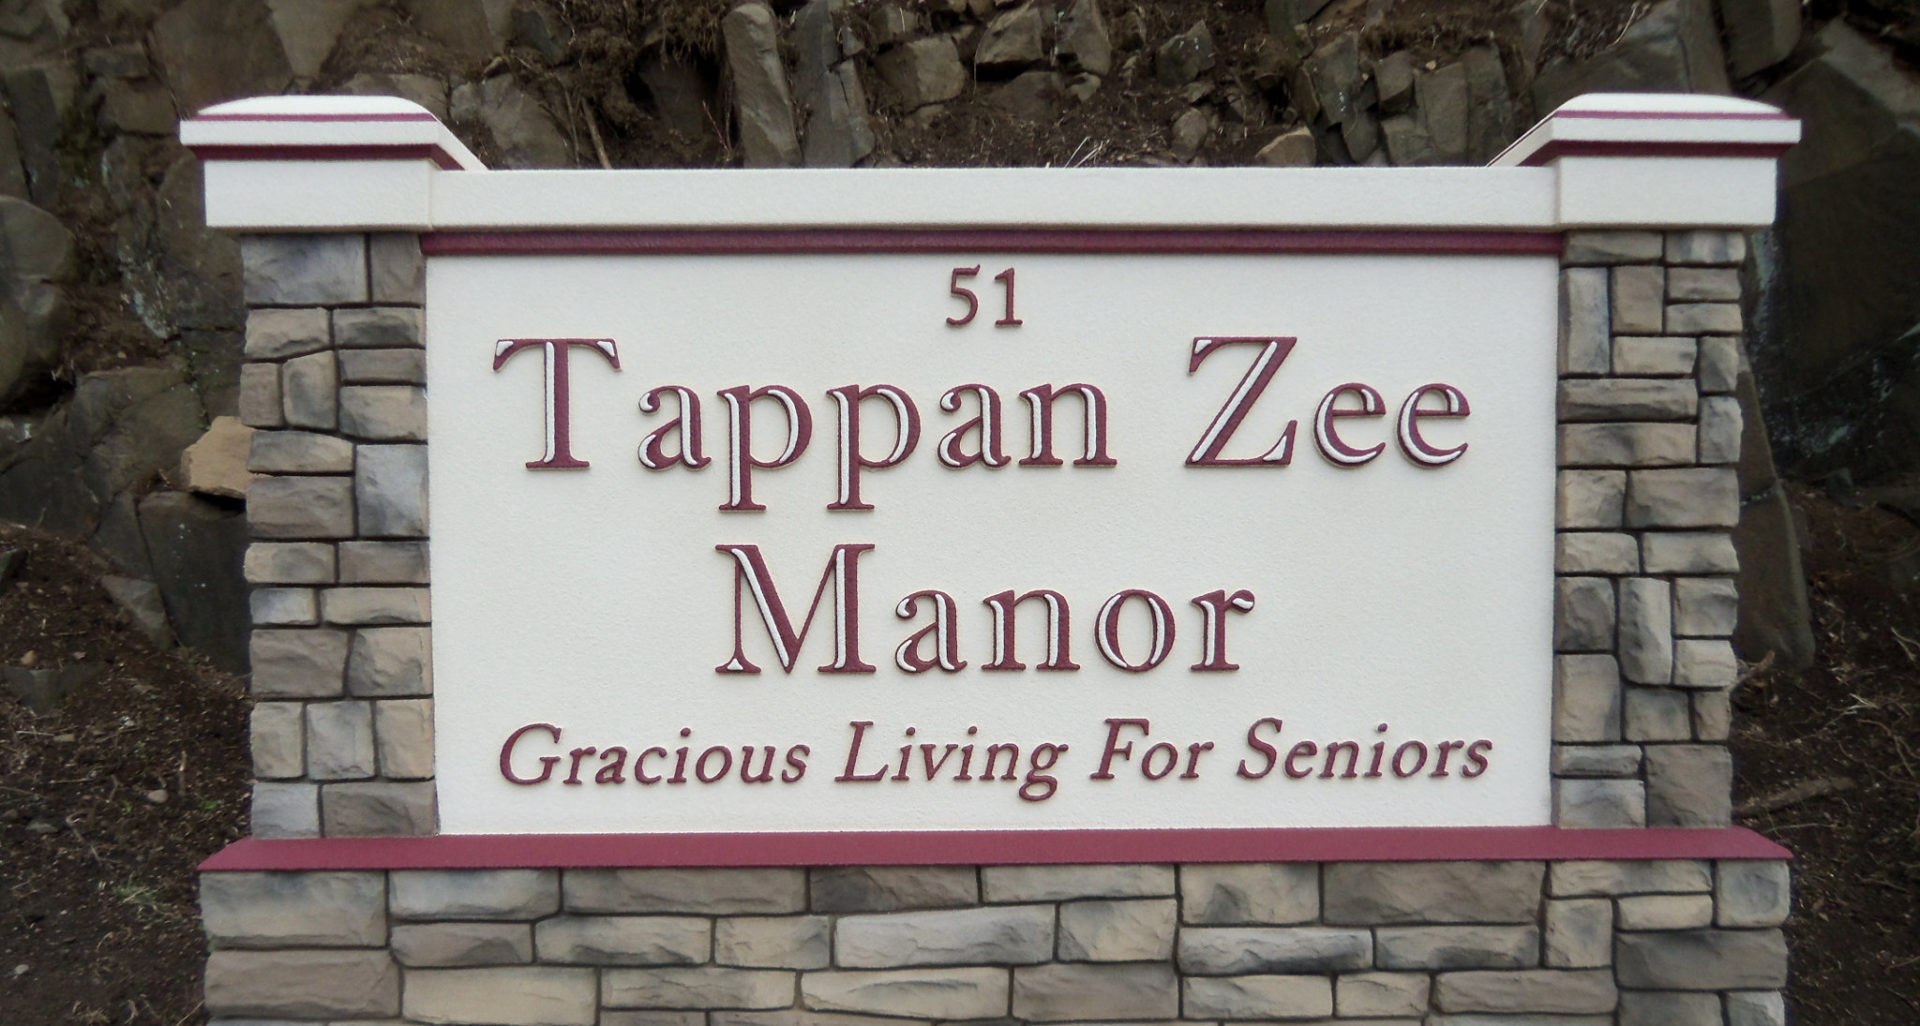 Tappan Zee Manor